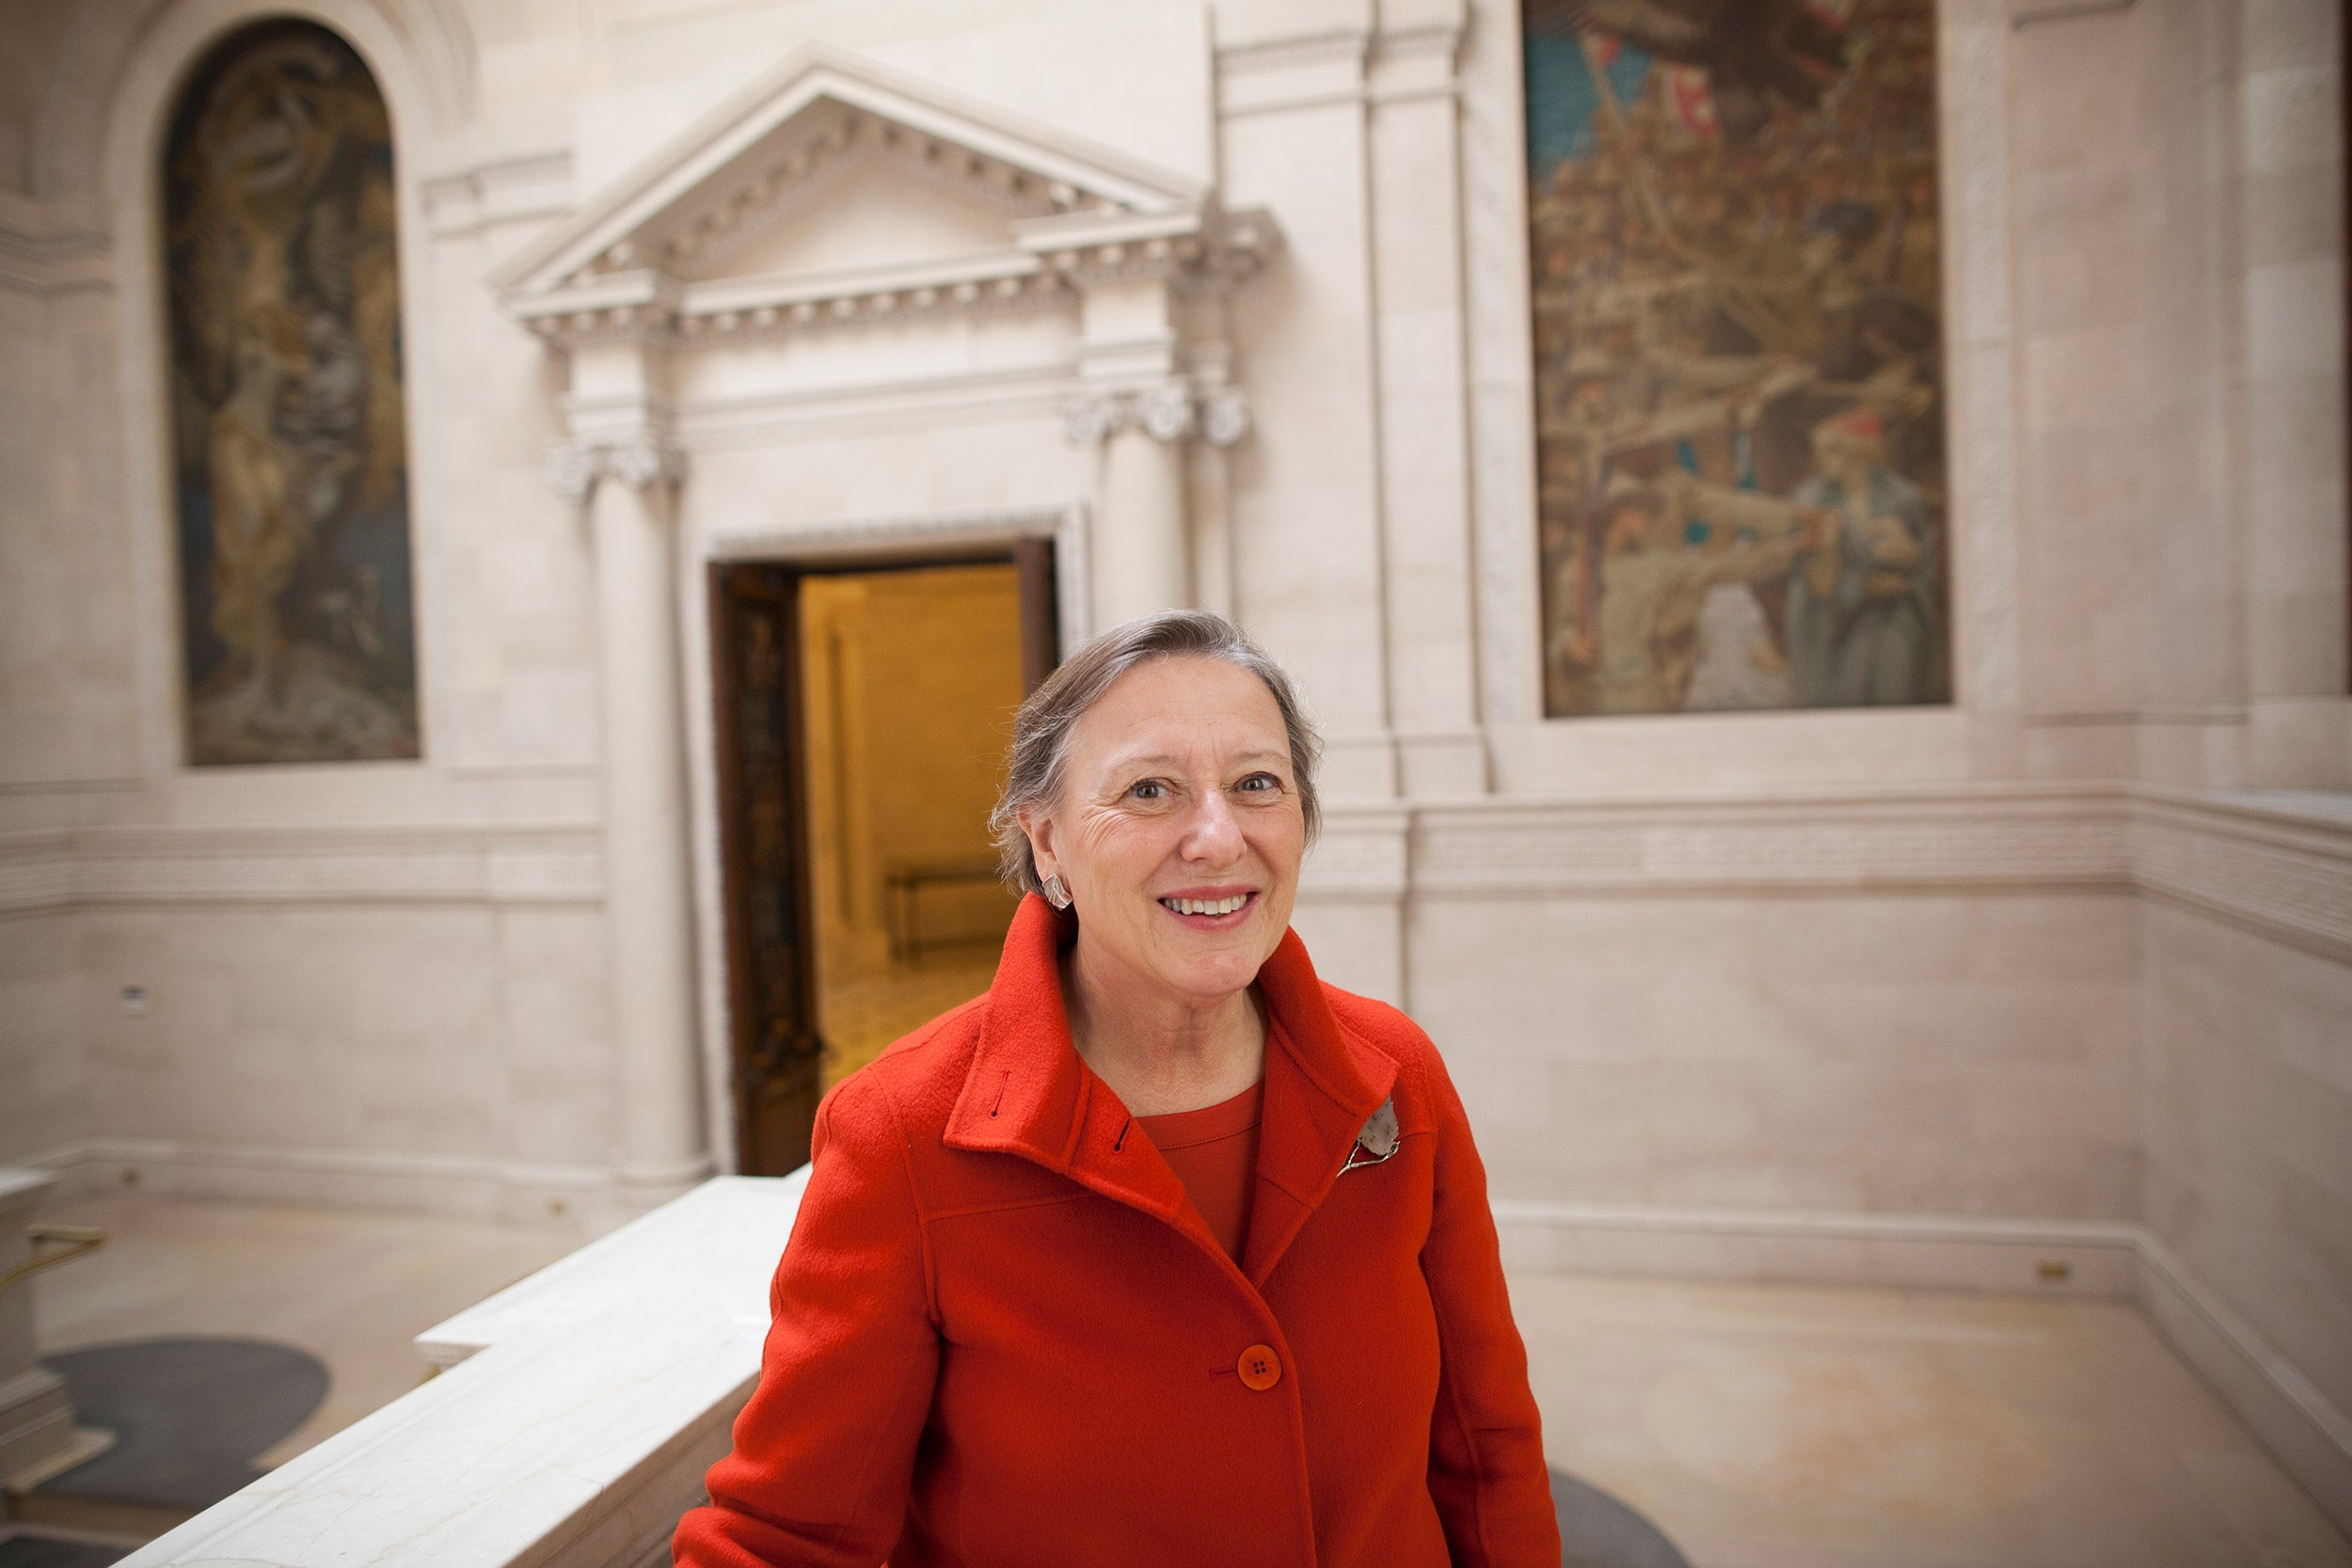 Sarah Thomas, vice president of the Harvard Library, will step down at the end of the year. Thomas spearheaded efforts to advance digital scholarship, making millions of pages of resources available to scholars around the world.